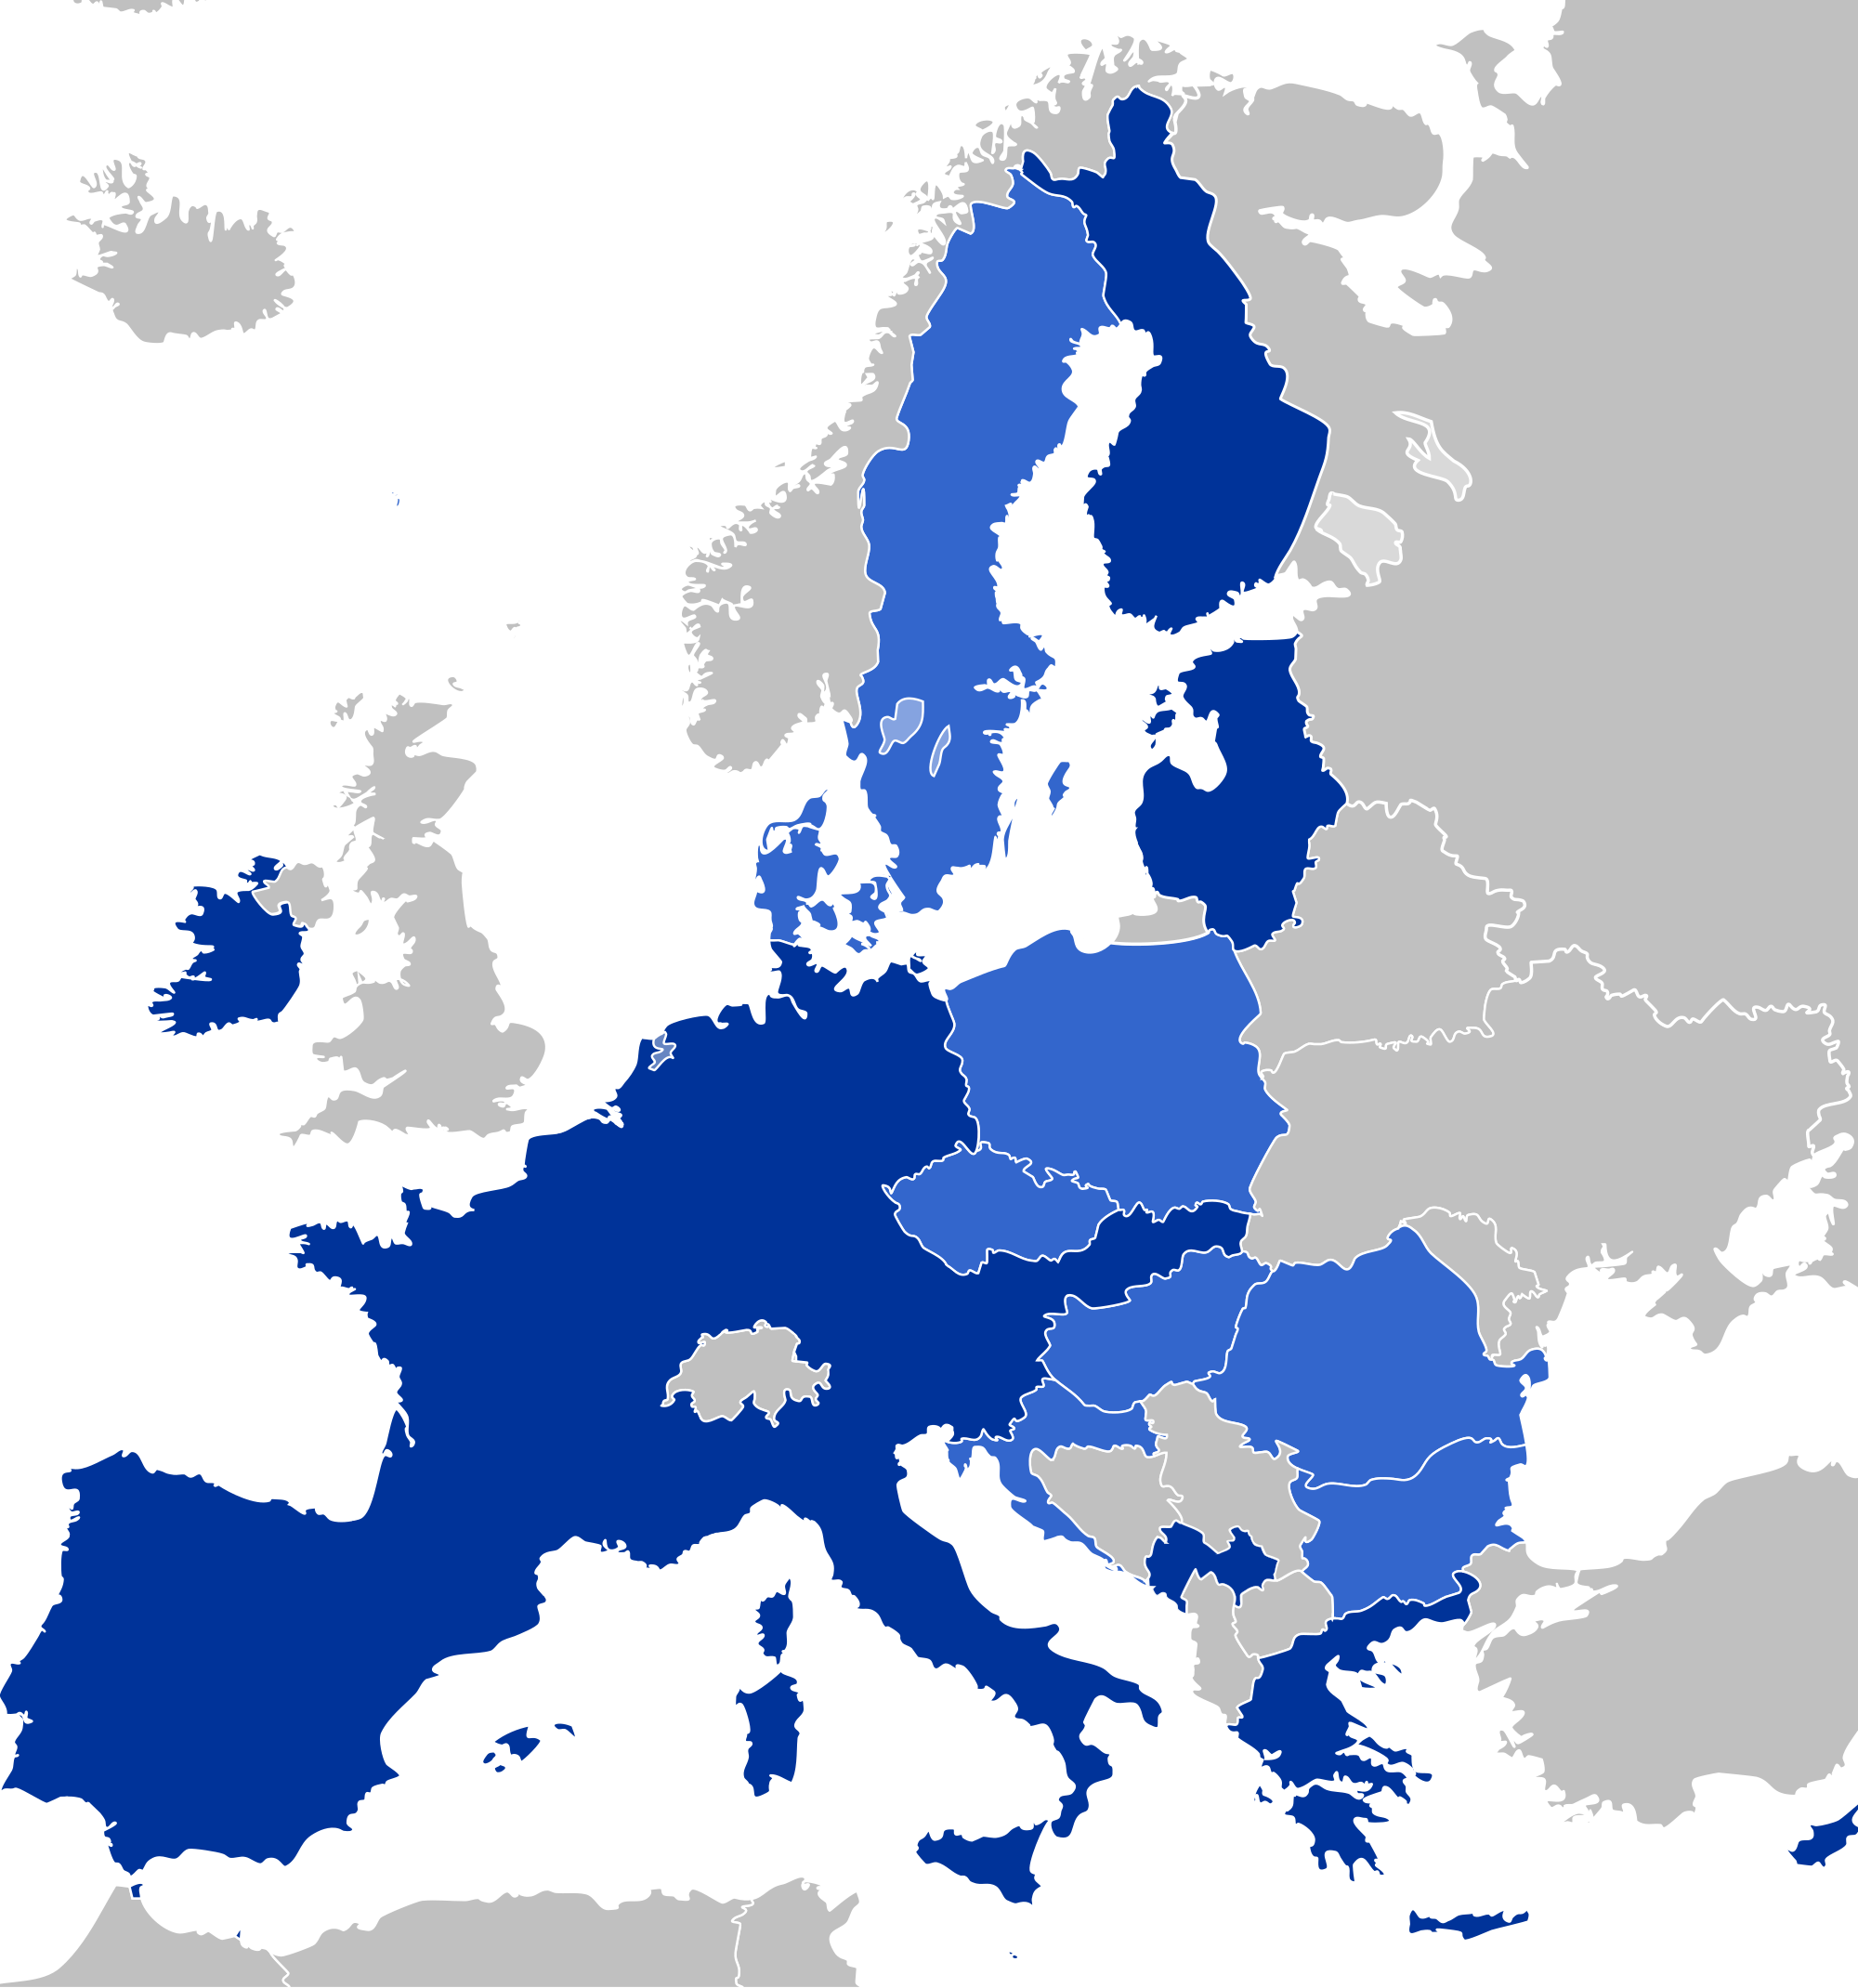 Svg class 2019. File blueeurozone wikimedia commons